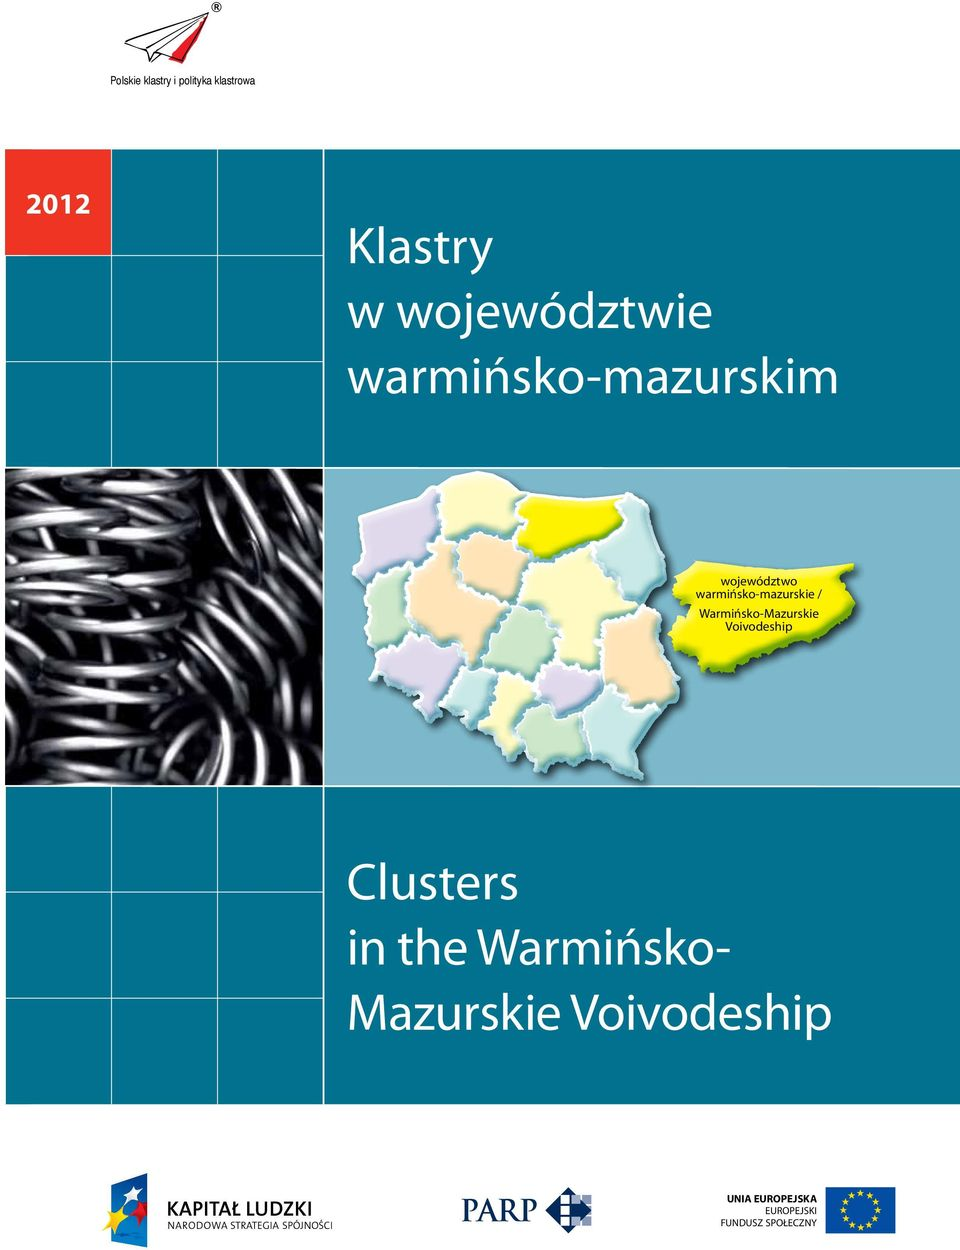 warmińsko-mazurskie / Warmińsko-Mazurskie Voivodeship Clusters in